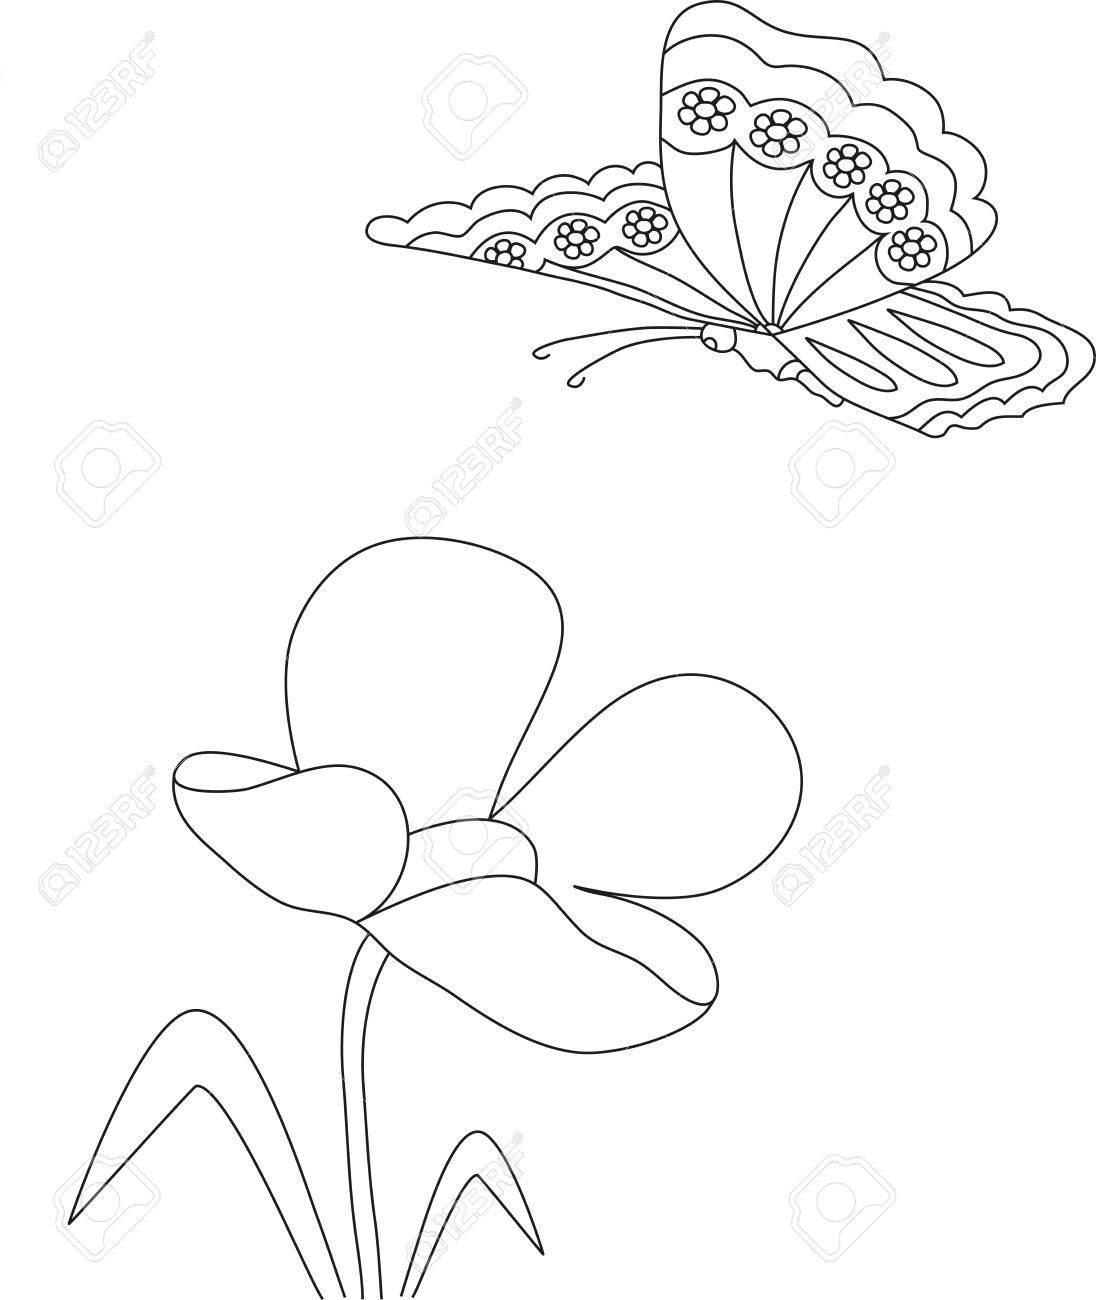 1096x1300 Manual Pencil Drawing Of A Tulip Flower And Butterfly, Coloring